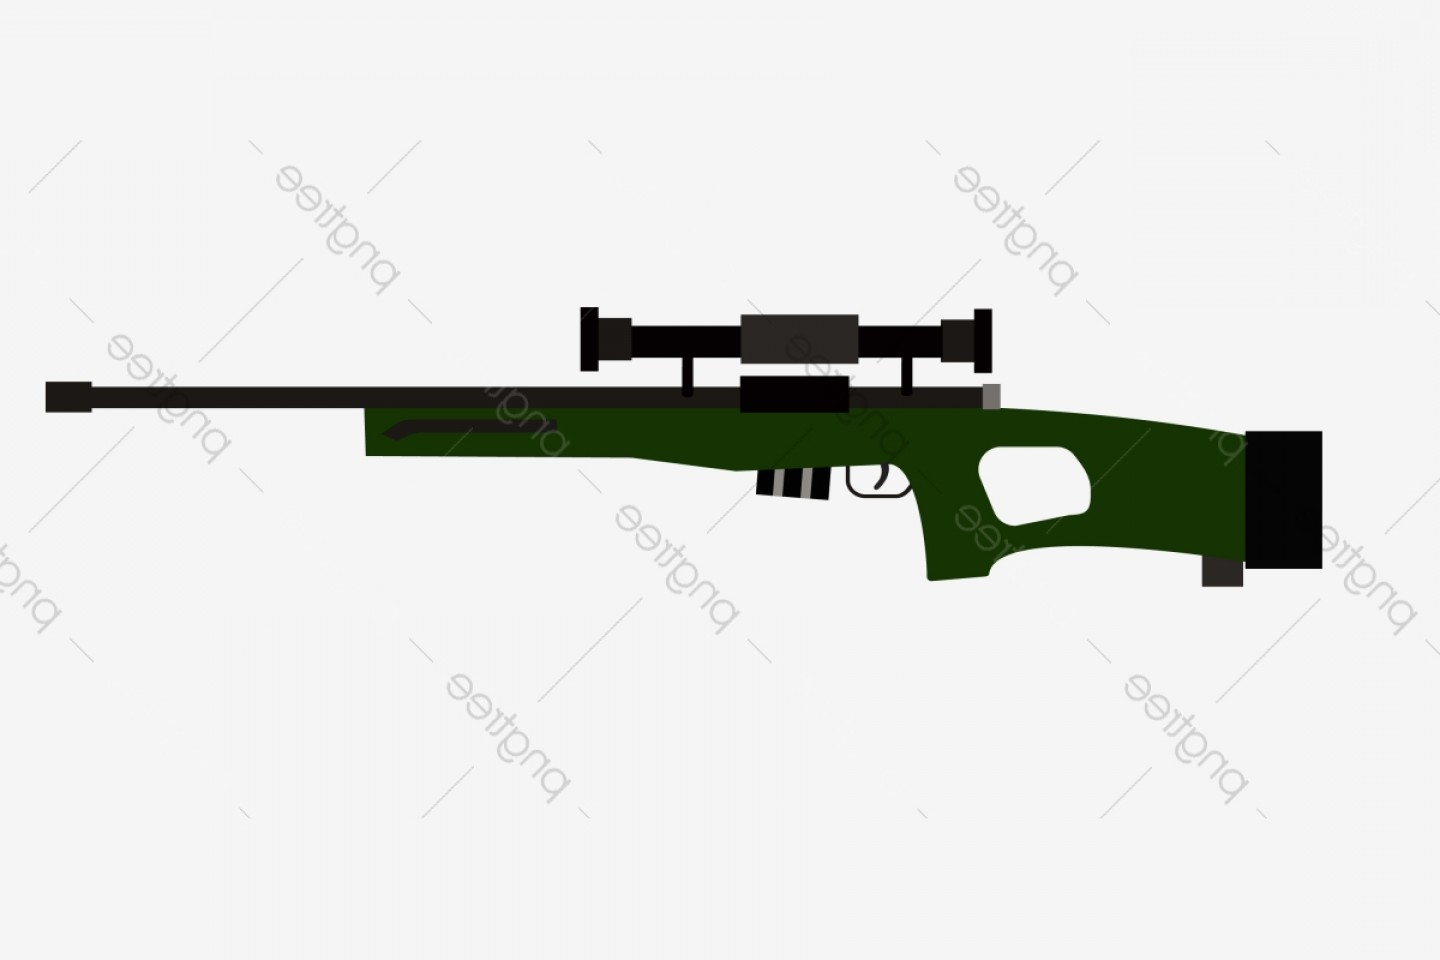 Us Special Forces Vector Files: Green Pistol Special Forces Gun Cartoon Illustration Hand Drawn Rifle Illustration